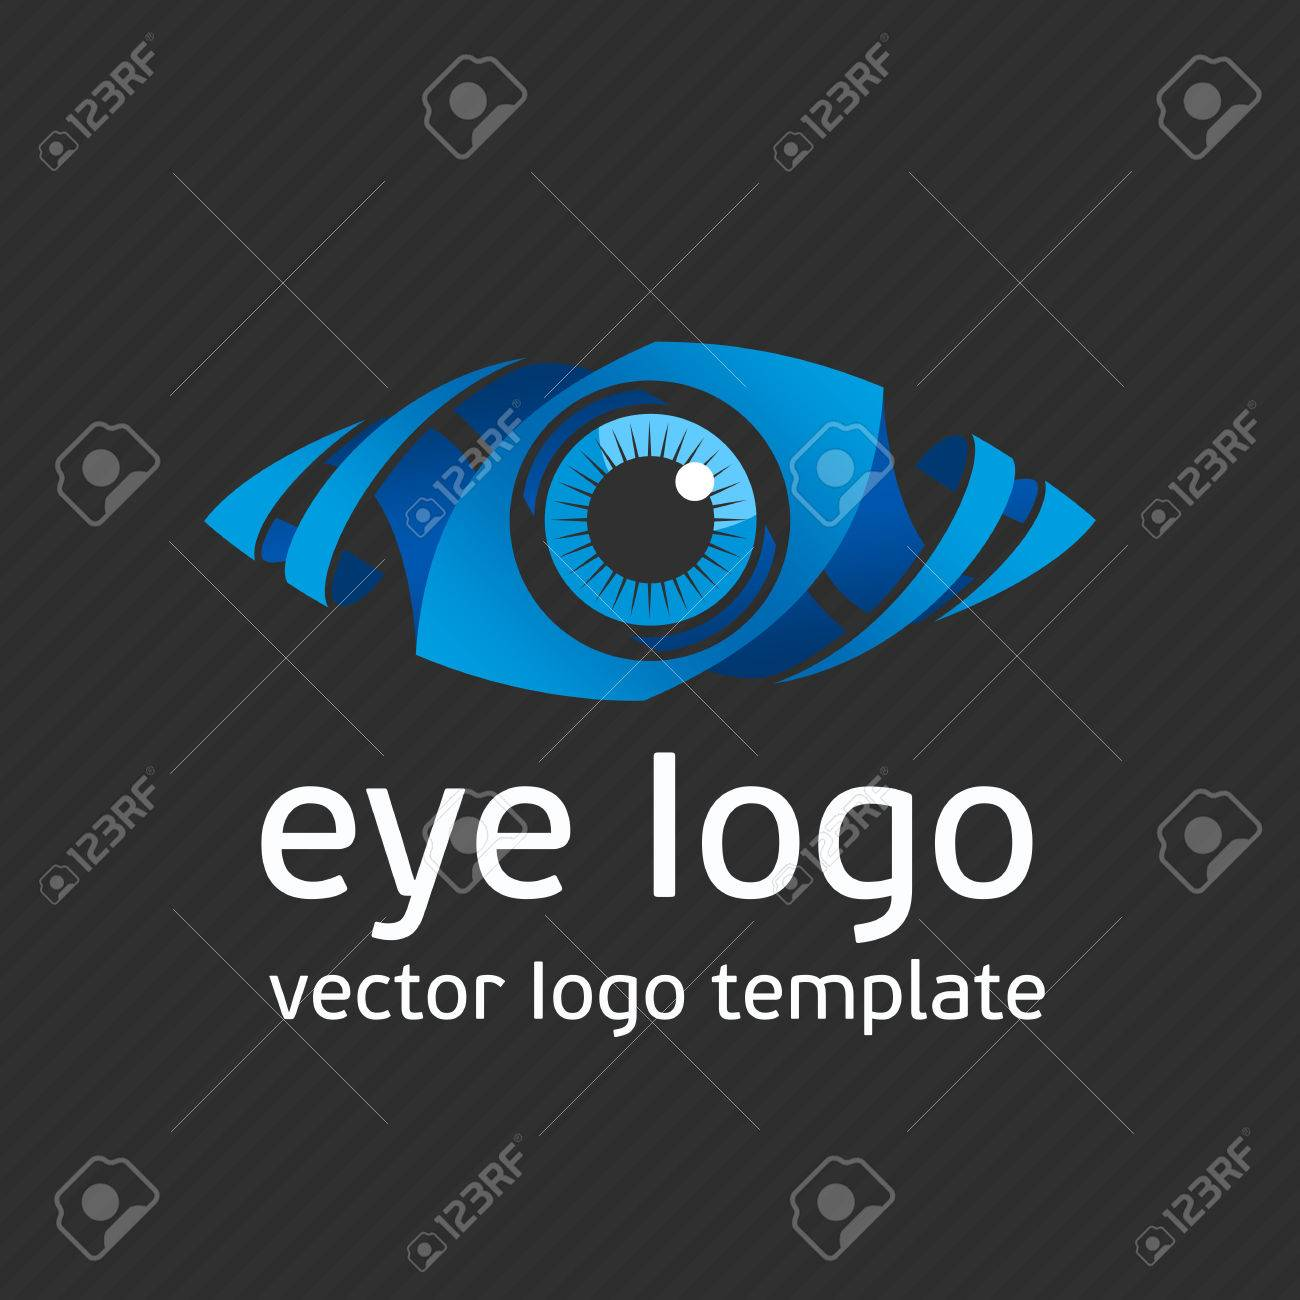 eye logo design vector template colorful media icon creative